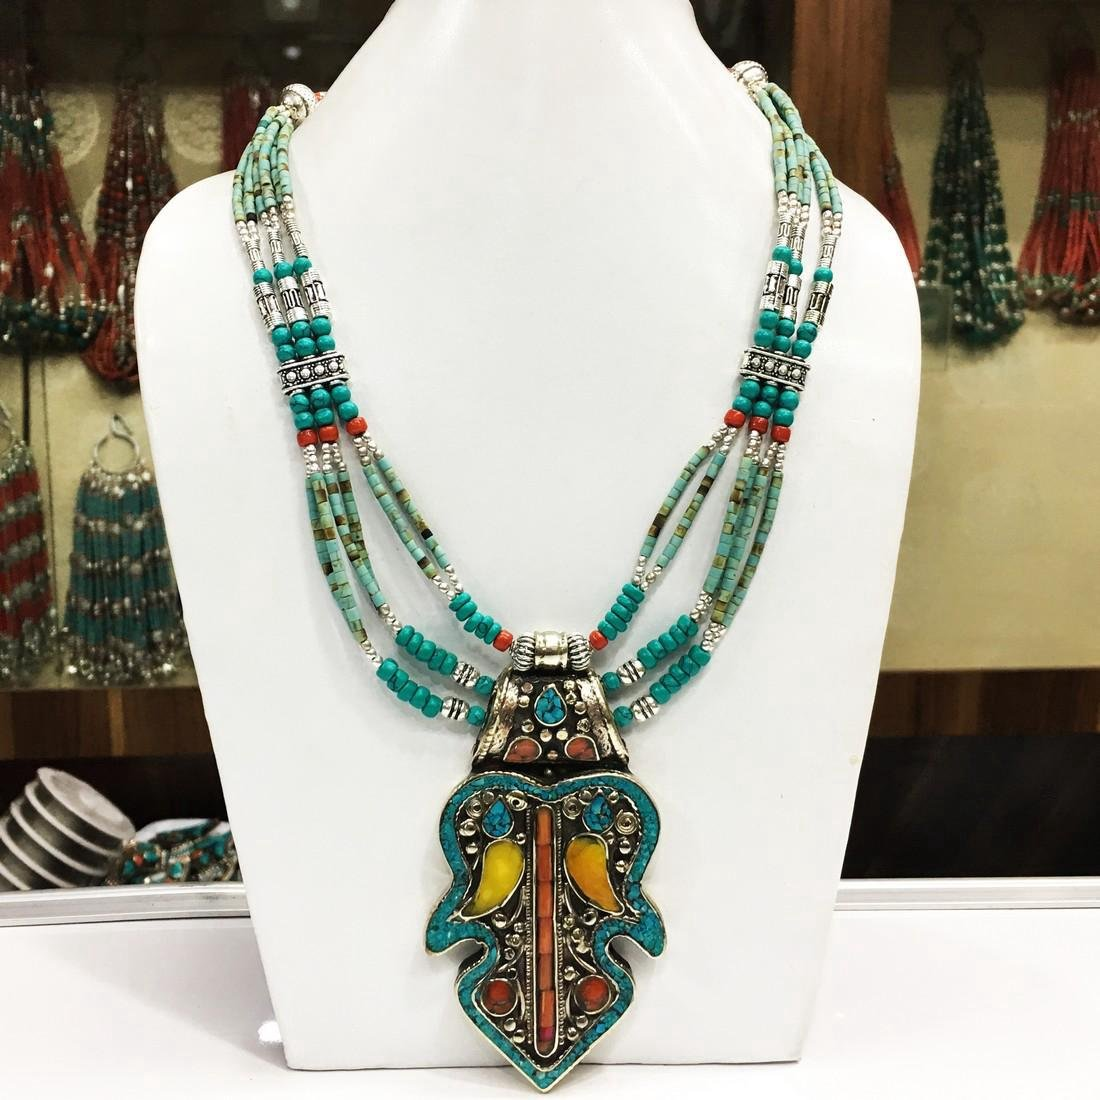 Vintage Tibetan Silver Turquoise & Coral Necklace